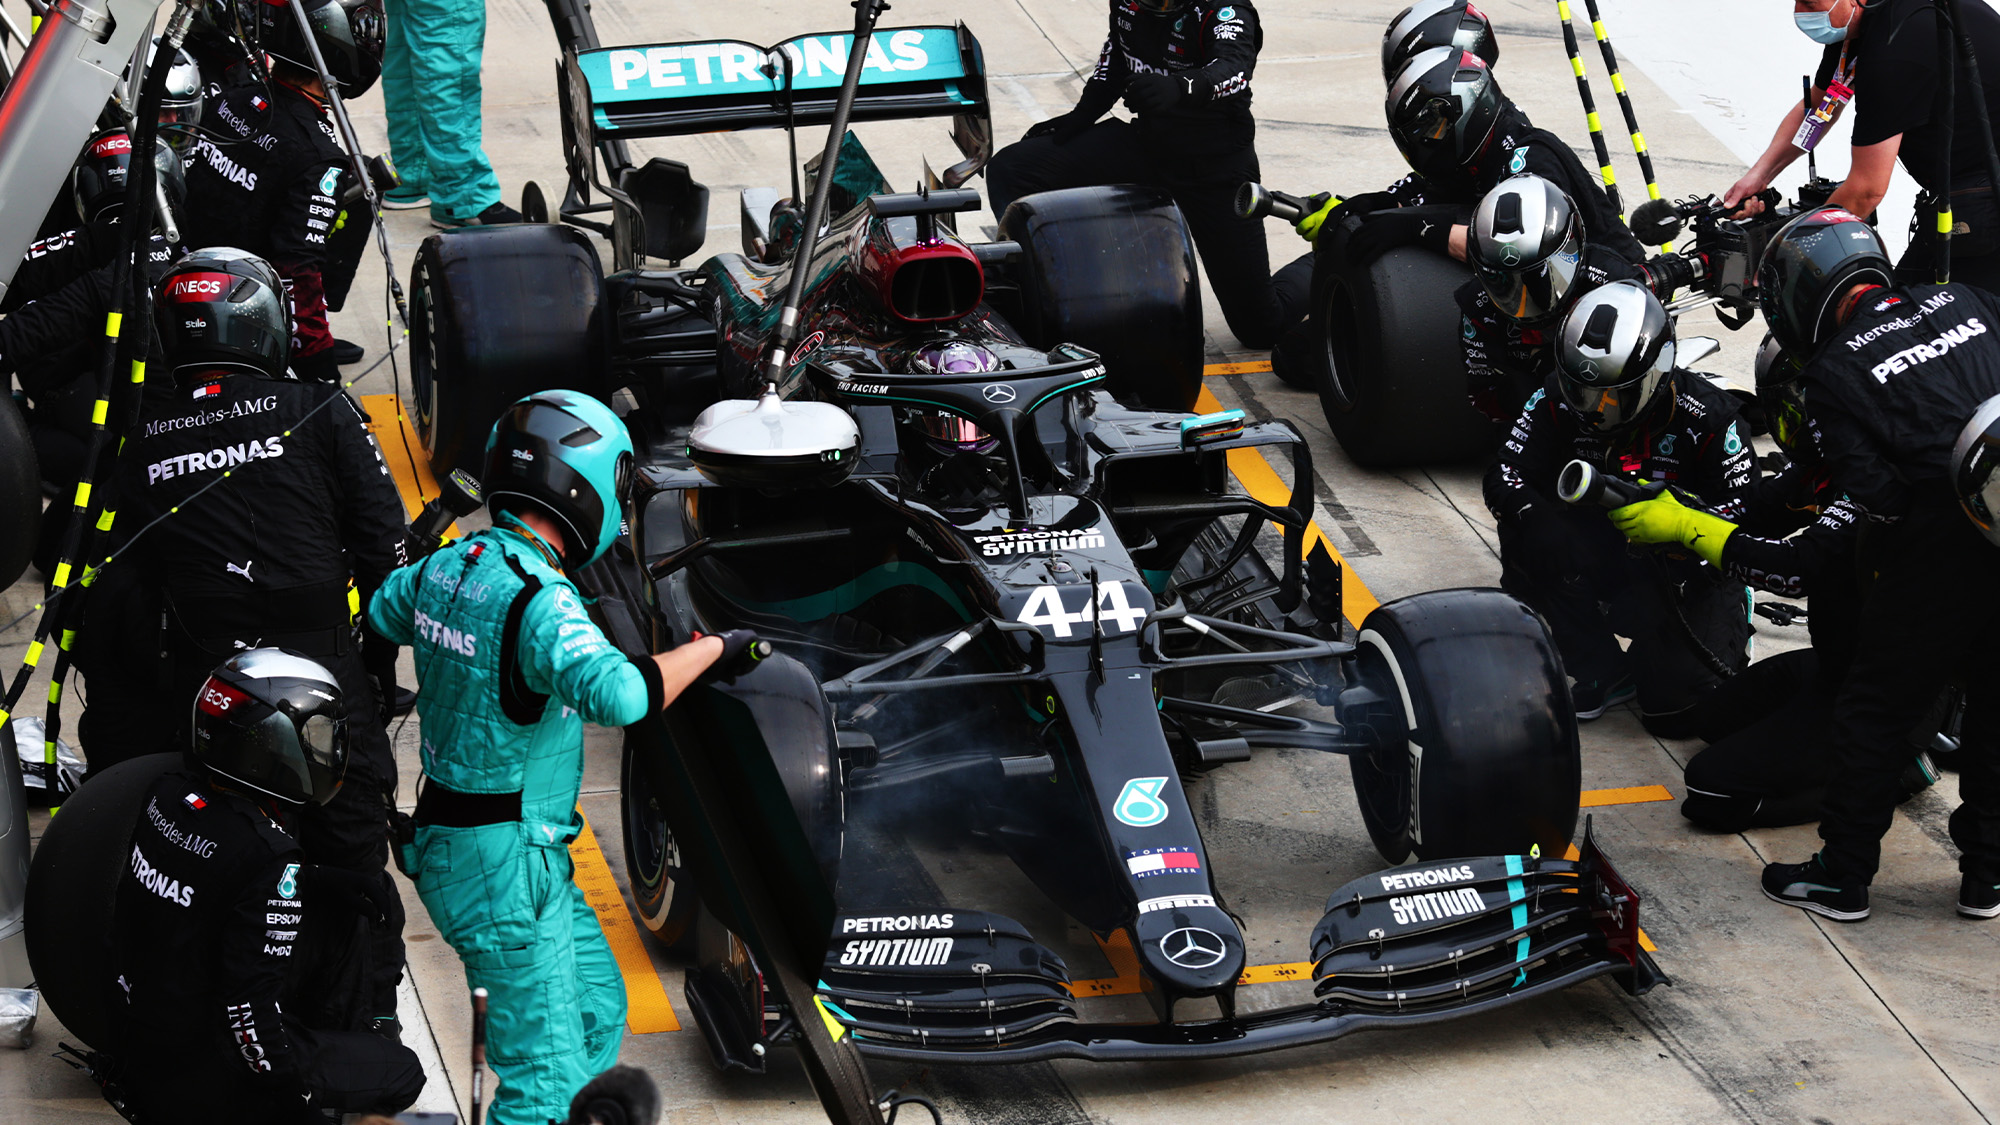 Lewis Hamilton makes his pitstop at Imola in the 2020 F1 Emilia Romagna Grand Prix